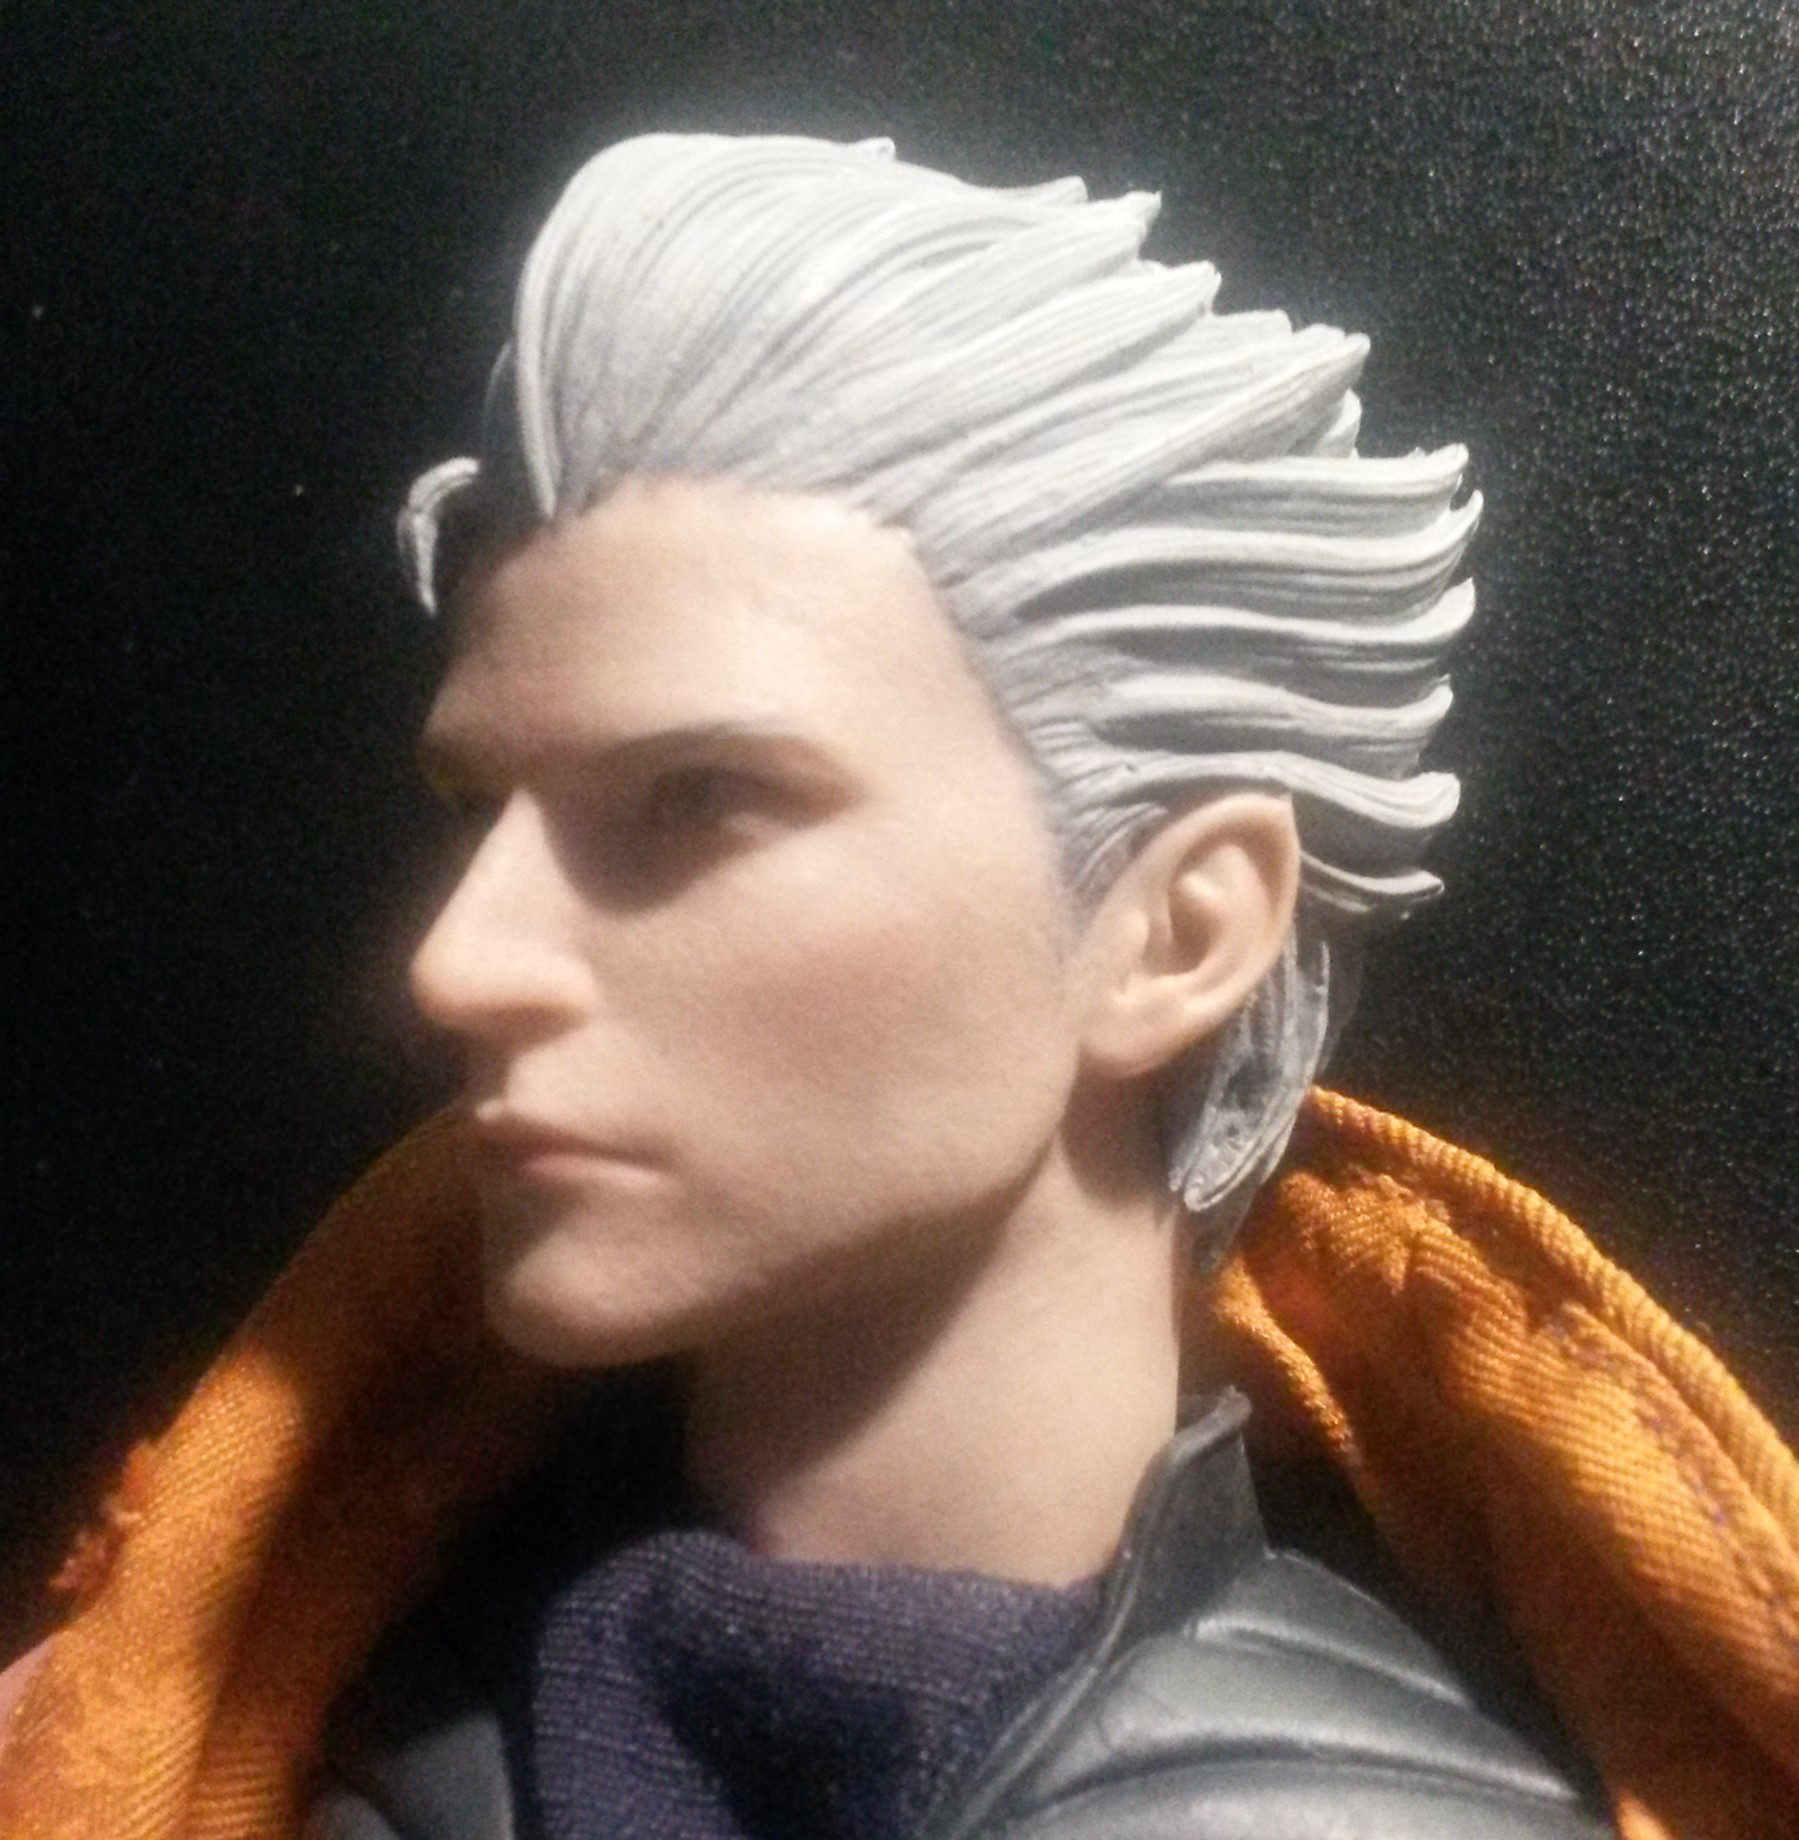 https://static.myfigurecollection.net/upload/pictures/2020/07/28/2483824.jpeg